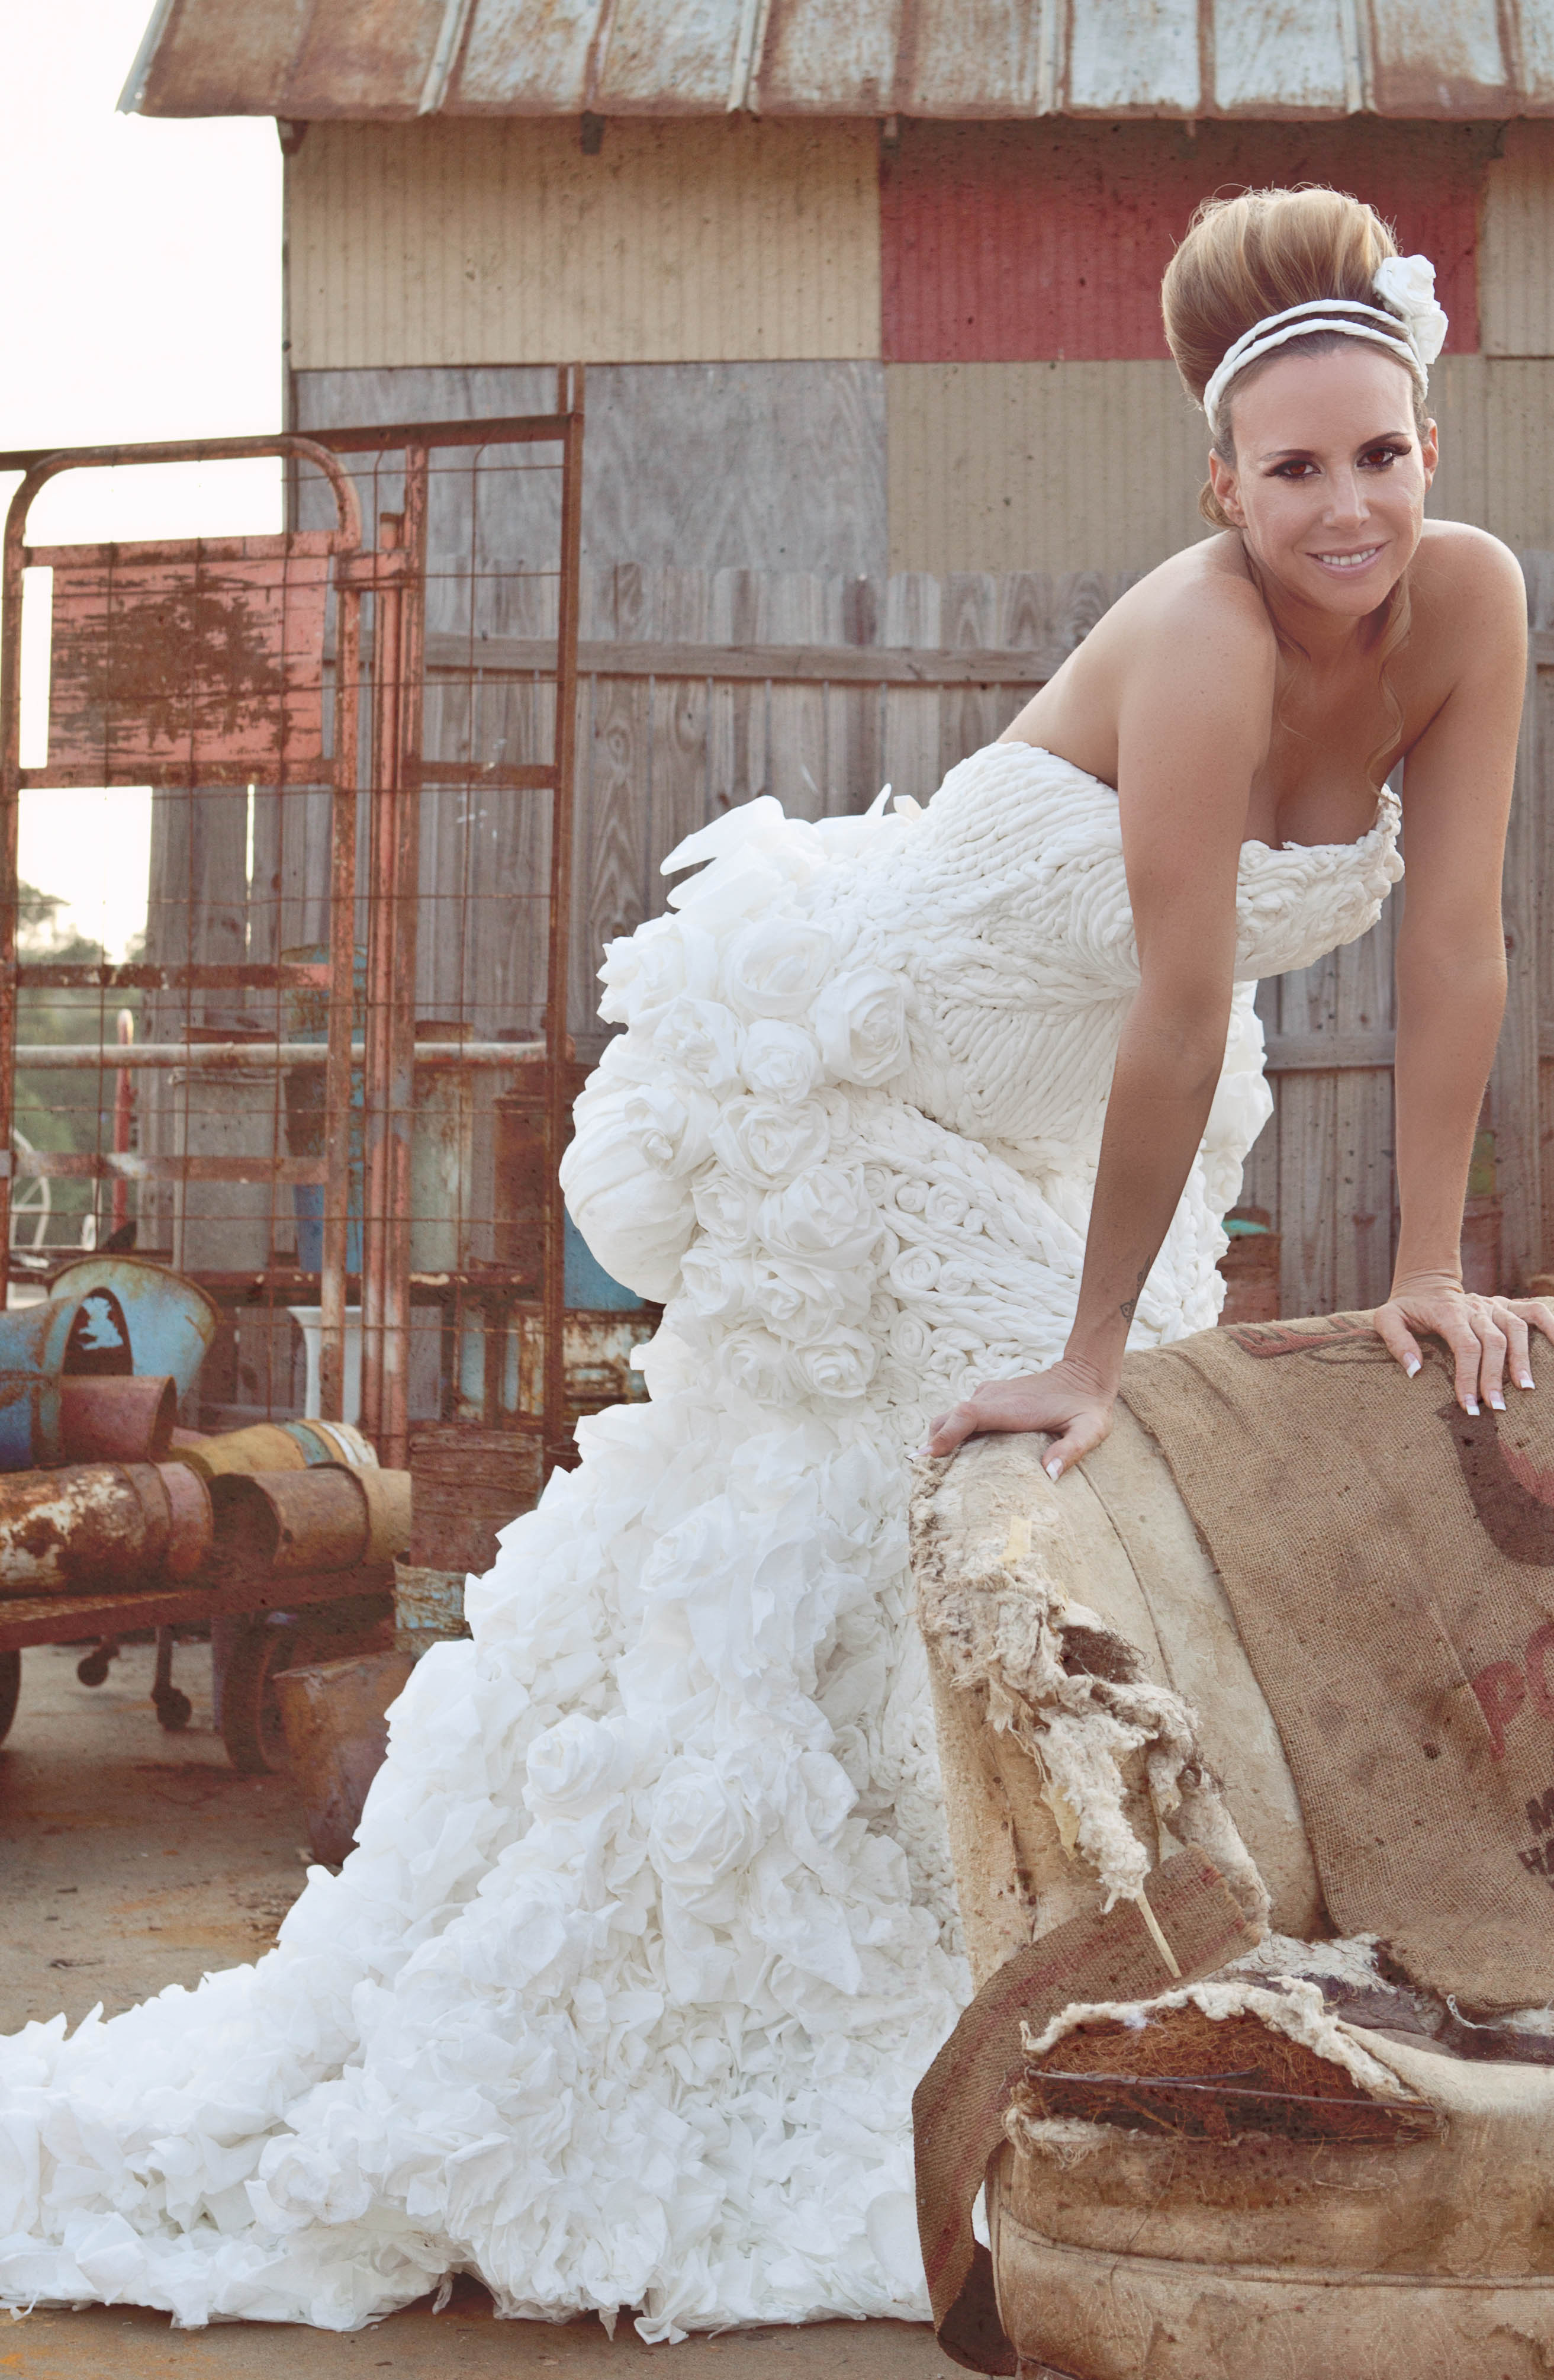 The 2011 toilet paper wedding dress contest for Toilet paper wedding dress 2017